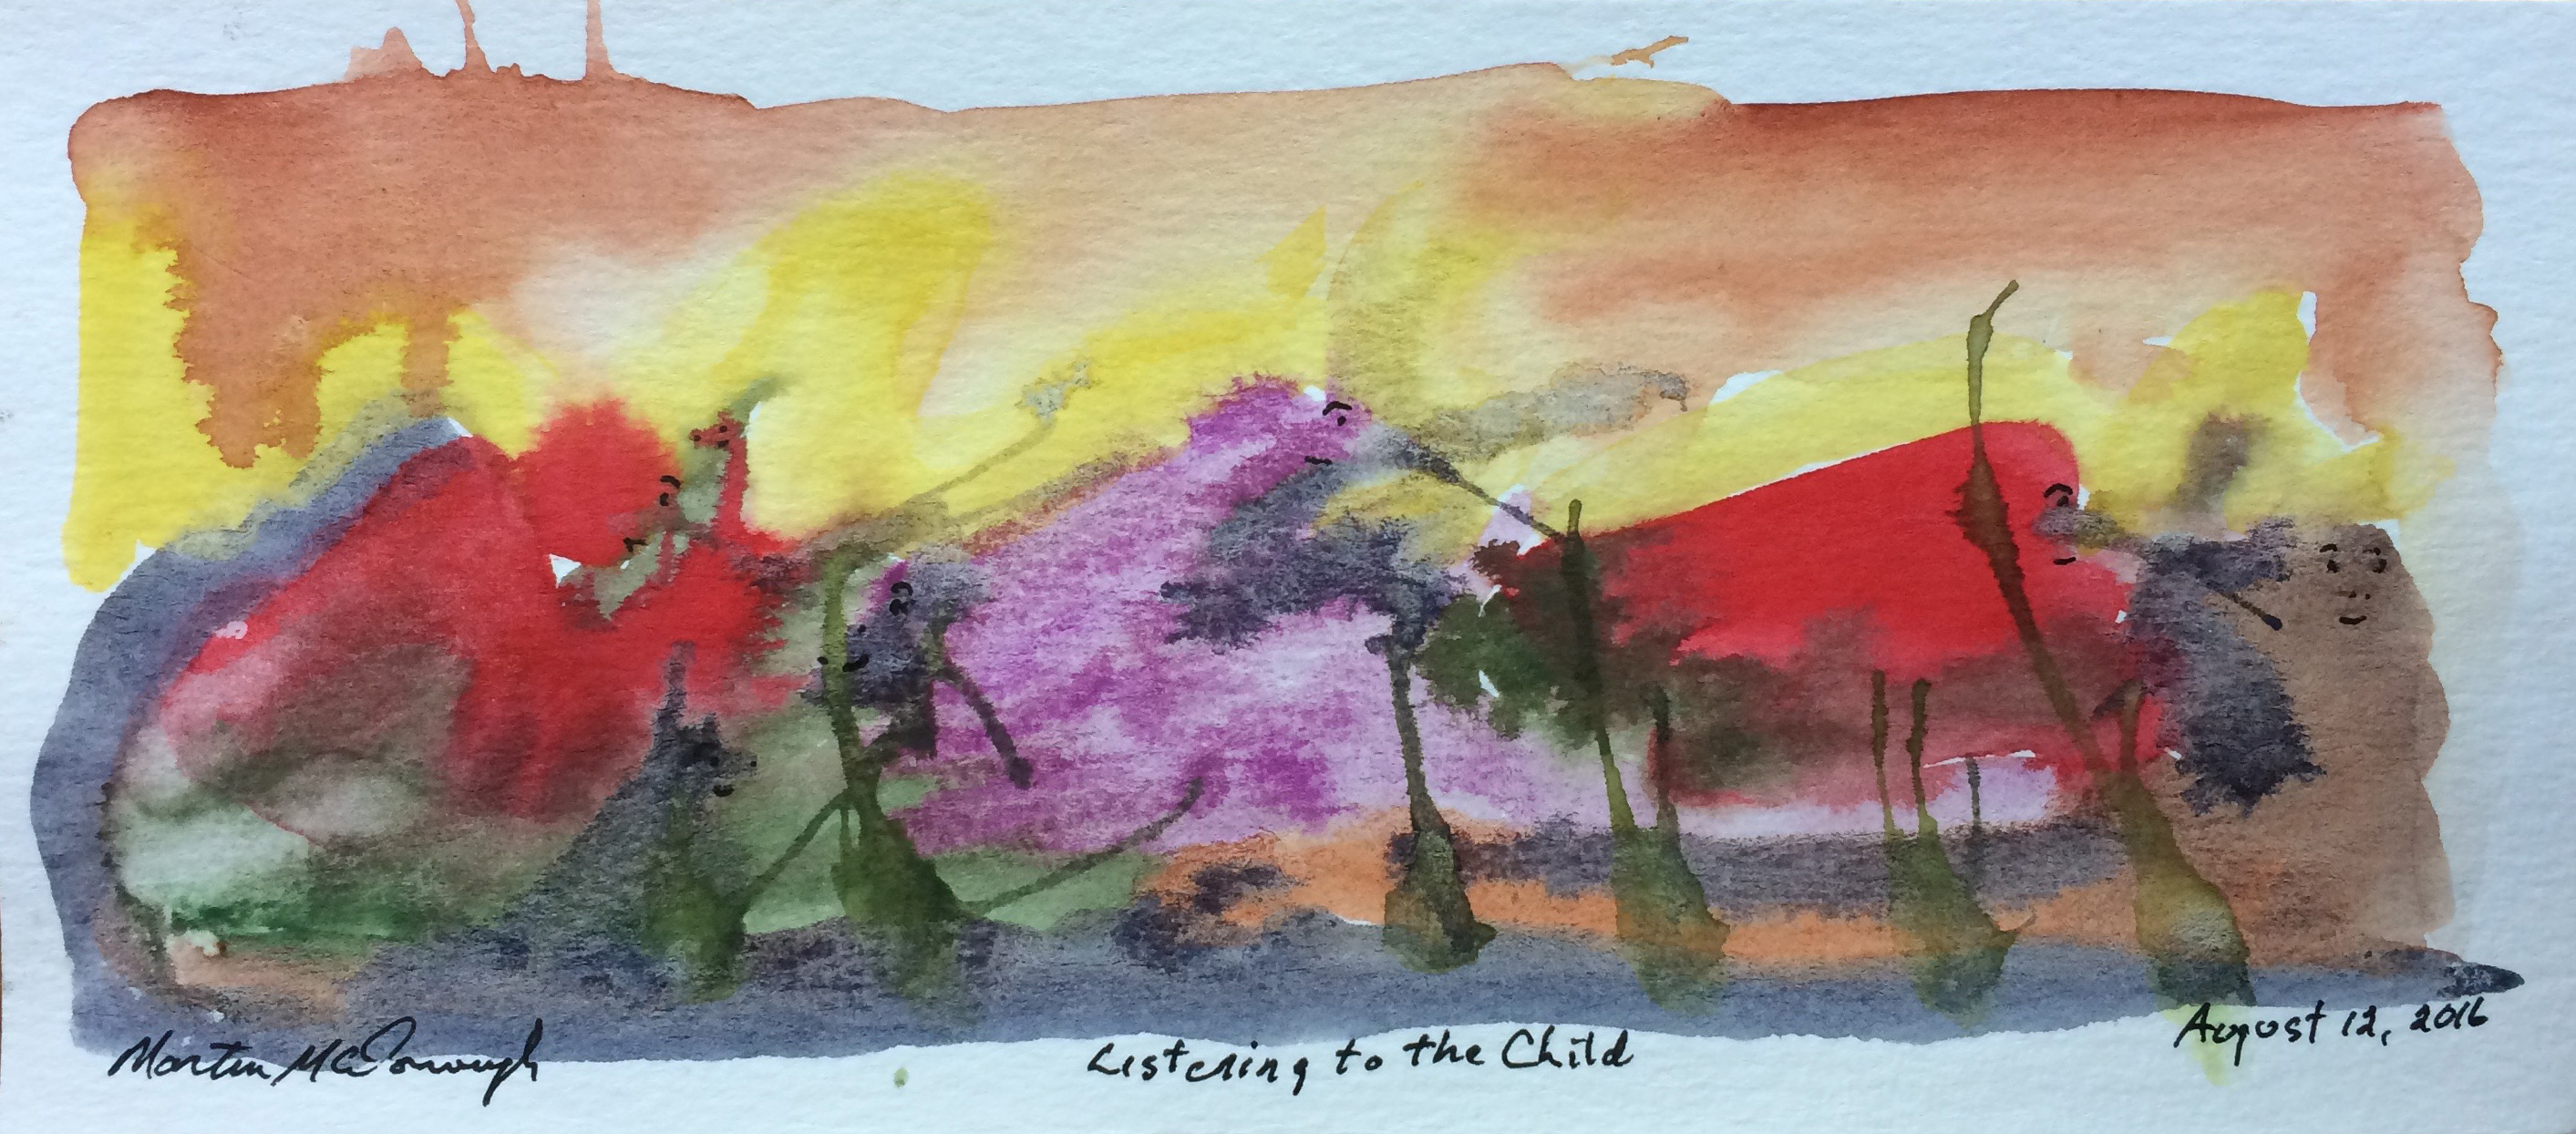 listening_to_the_child_web